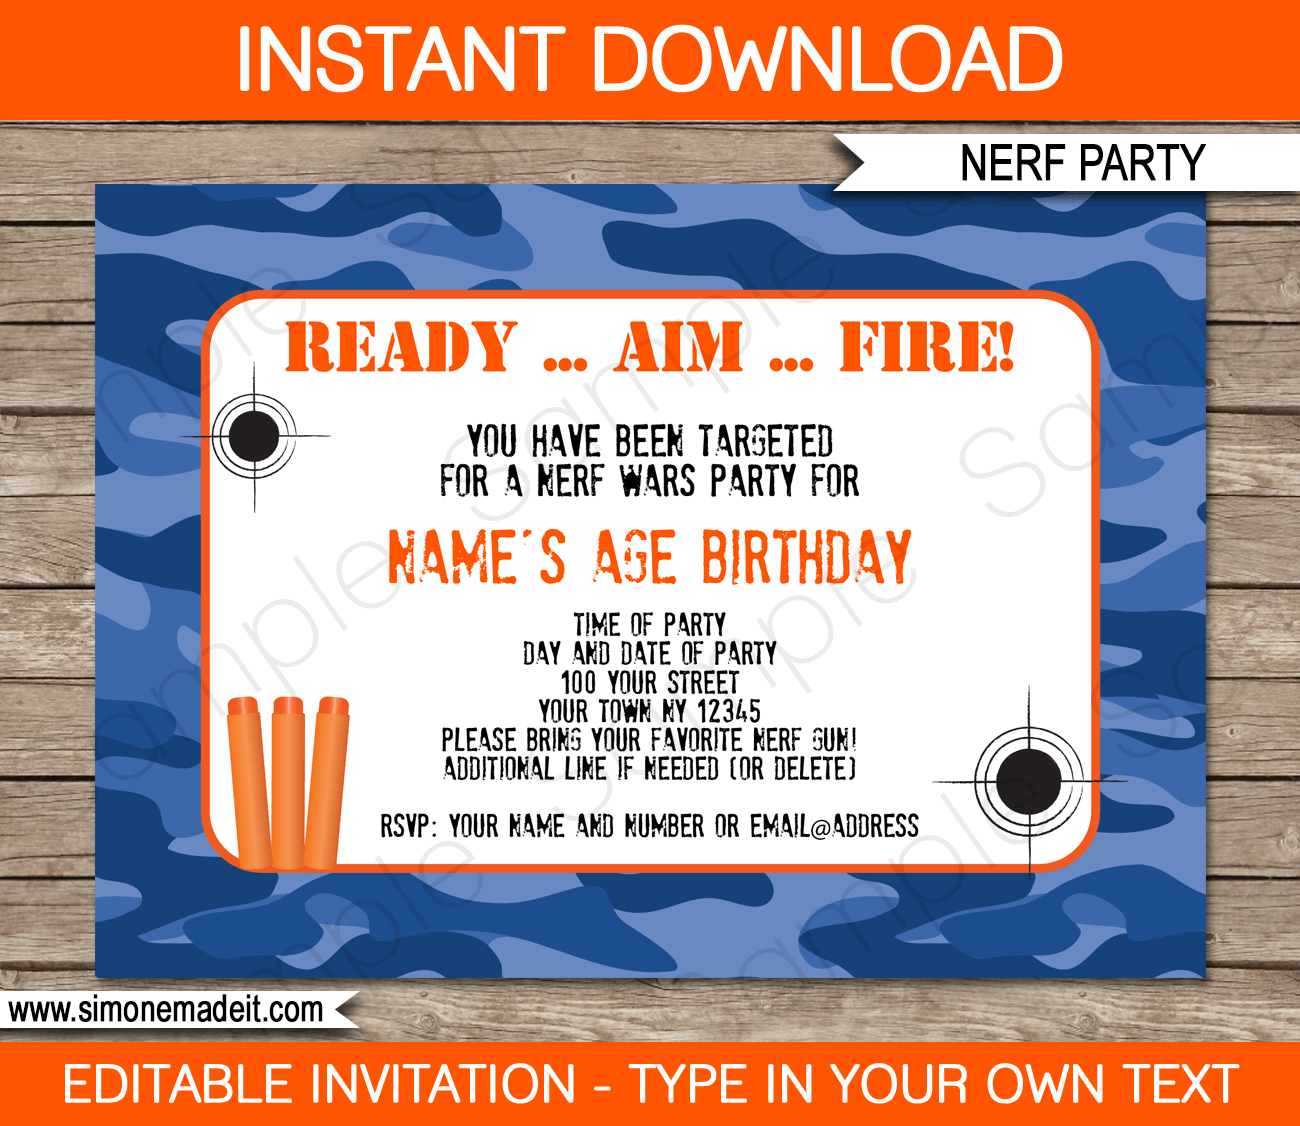 Nerf Birthday Party Invitations Editable Template Blue Camo - Party invitation template: free science birthday party invitation templates